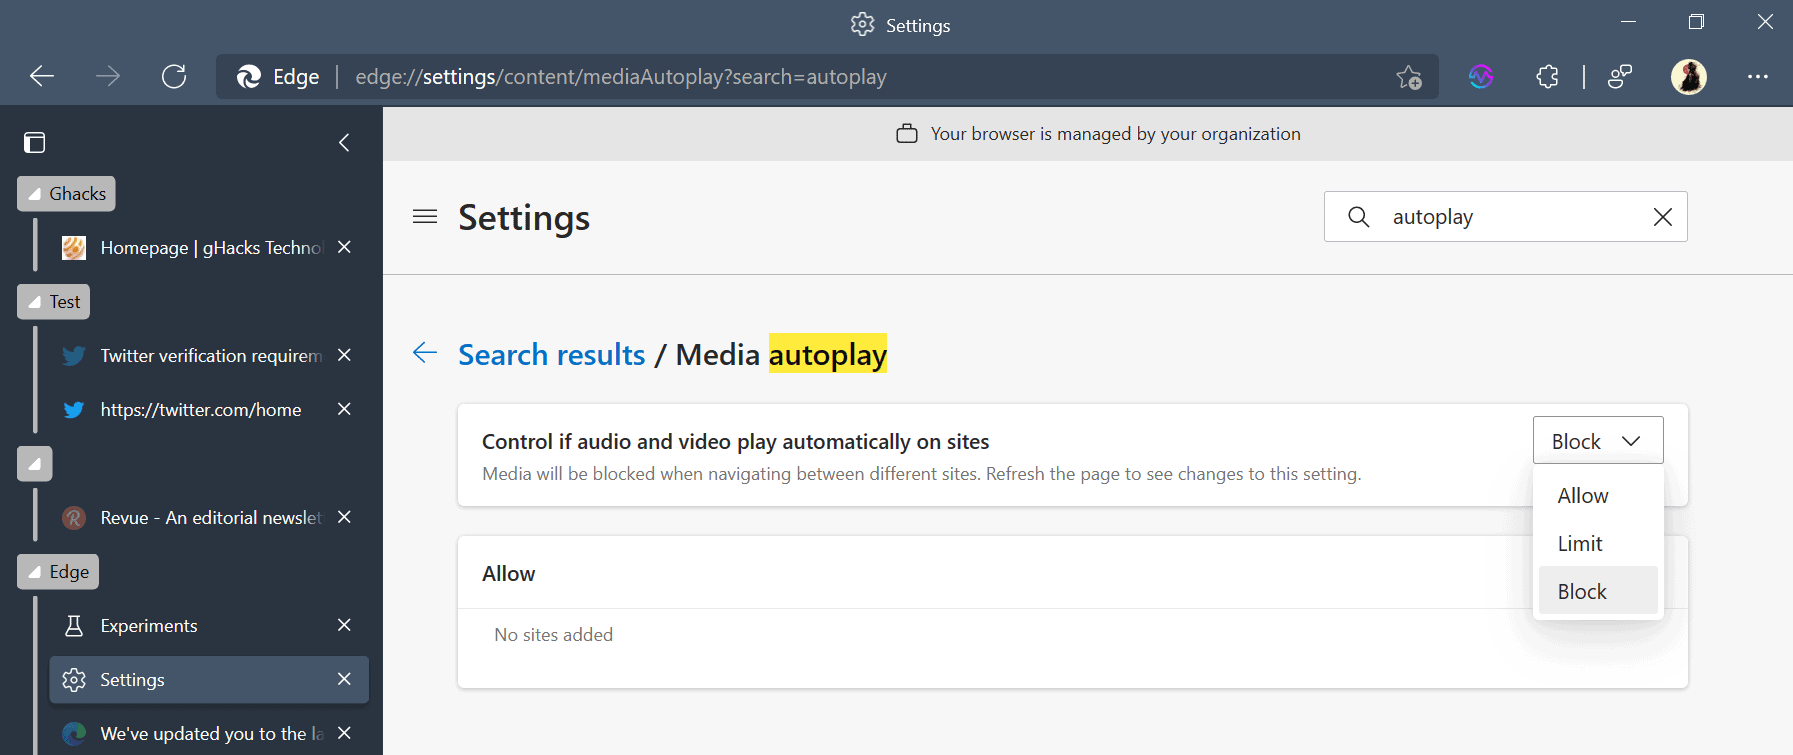 Microsoft Edge 92 won't autoplay all media anymore by default